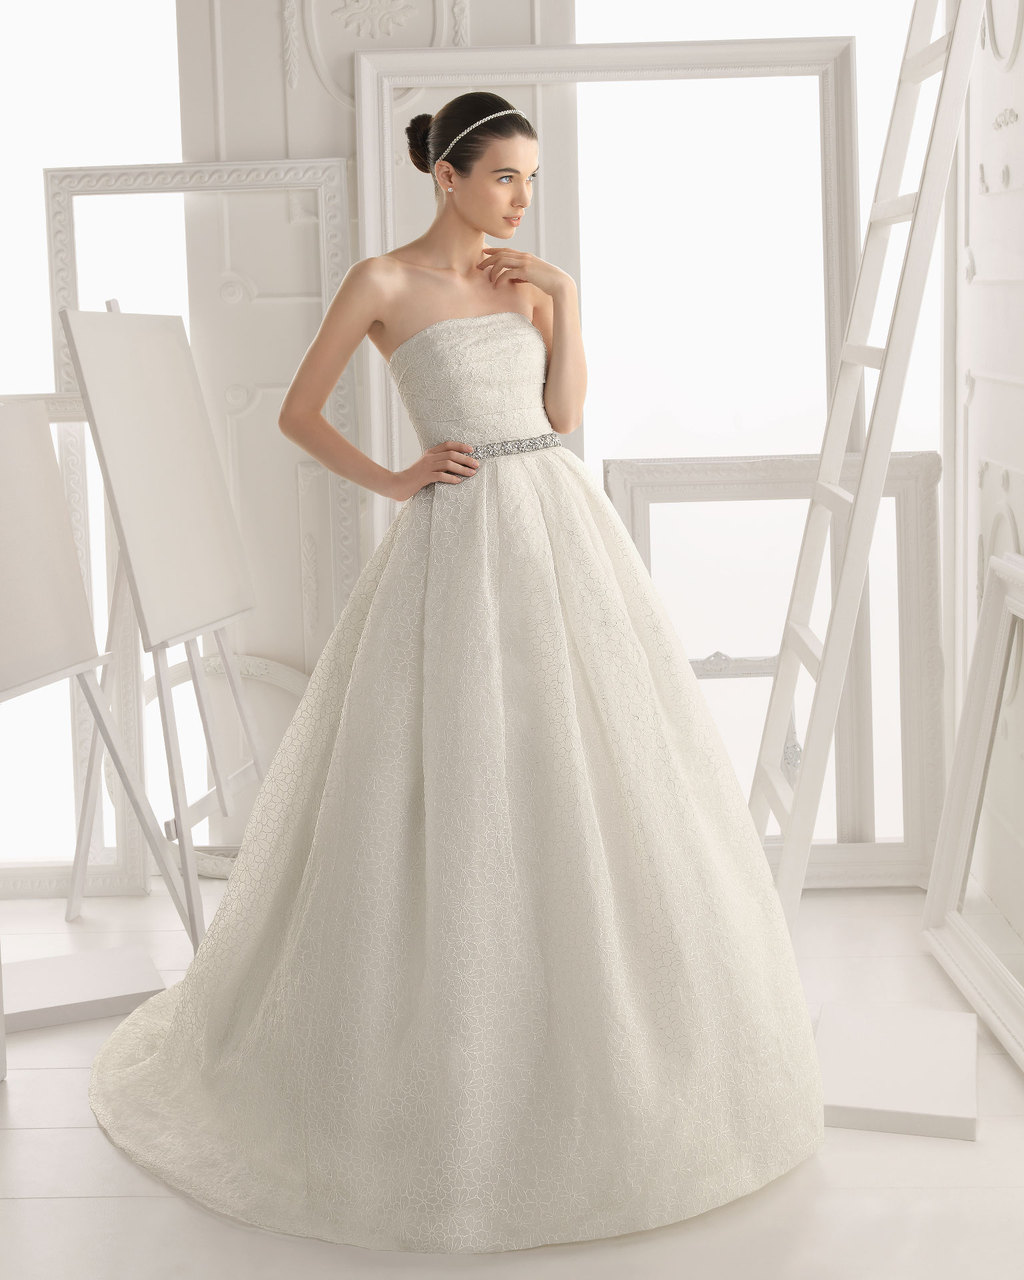 Aire-barcelona-wedding-dress-2014-bridal-original.full